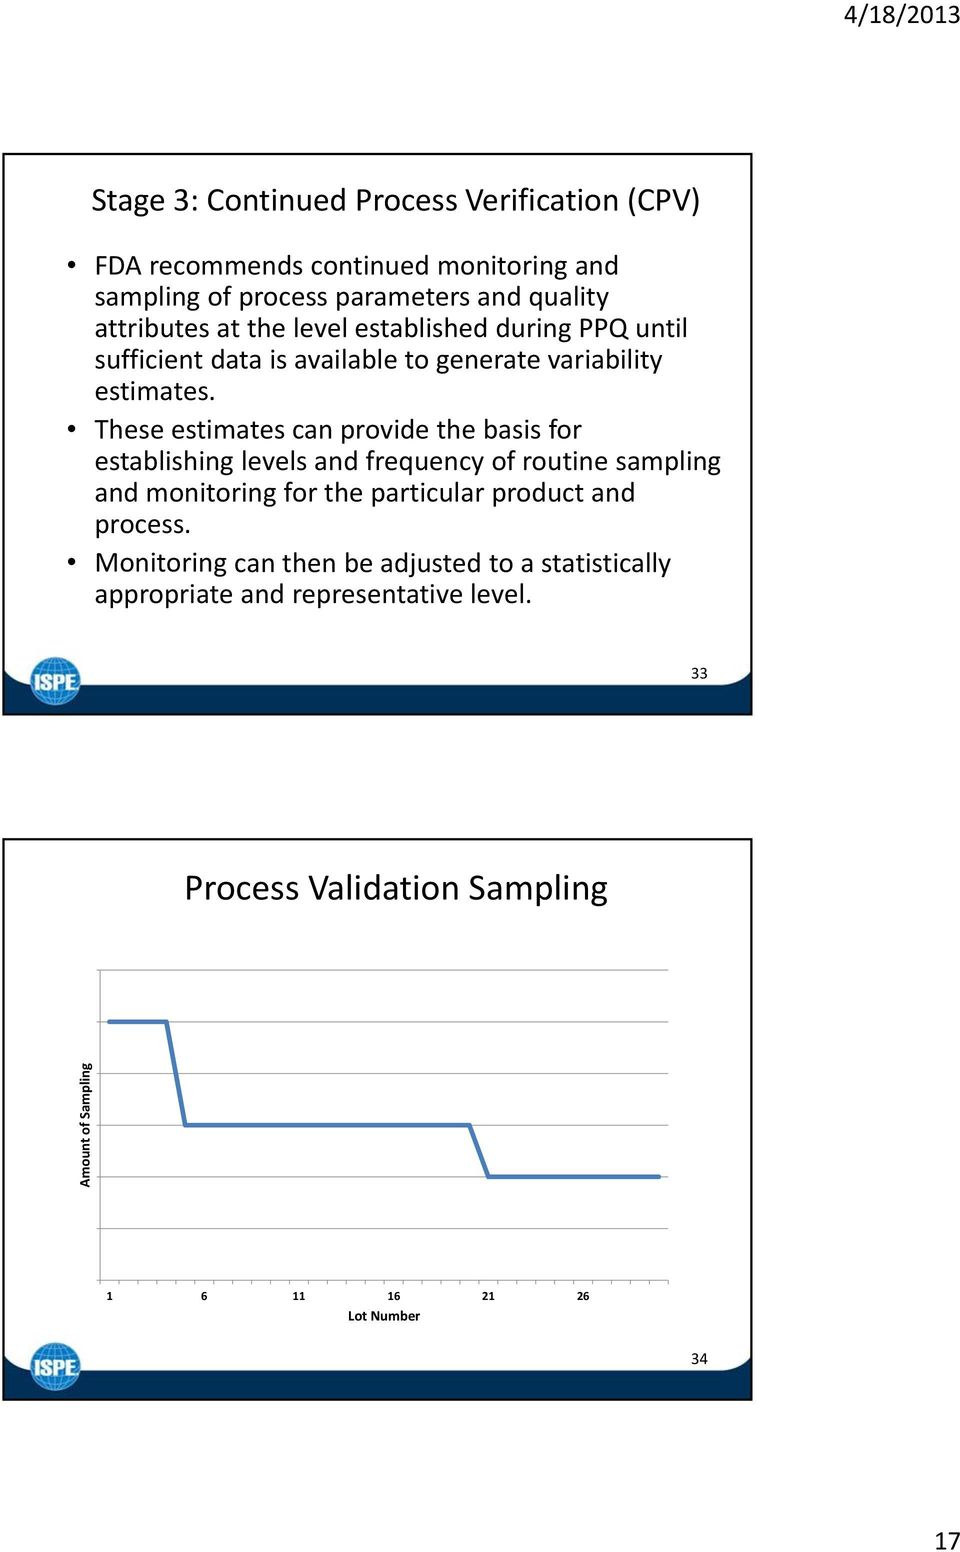 These estimates can provide the basis for establishing levels and frequency of routine sampling and monitoring for the particular product and